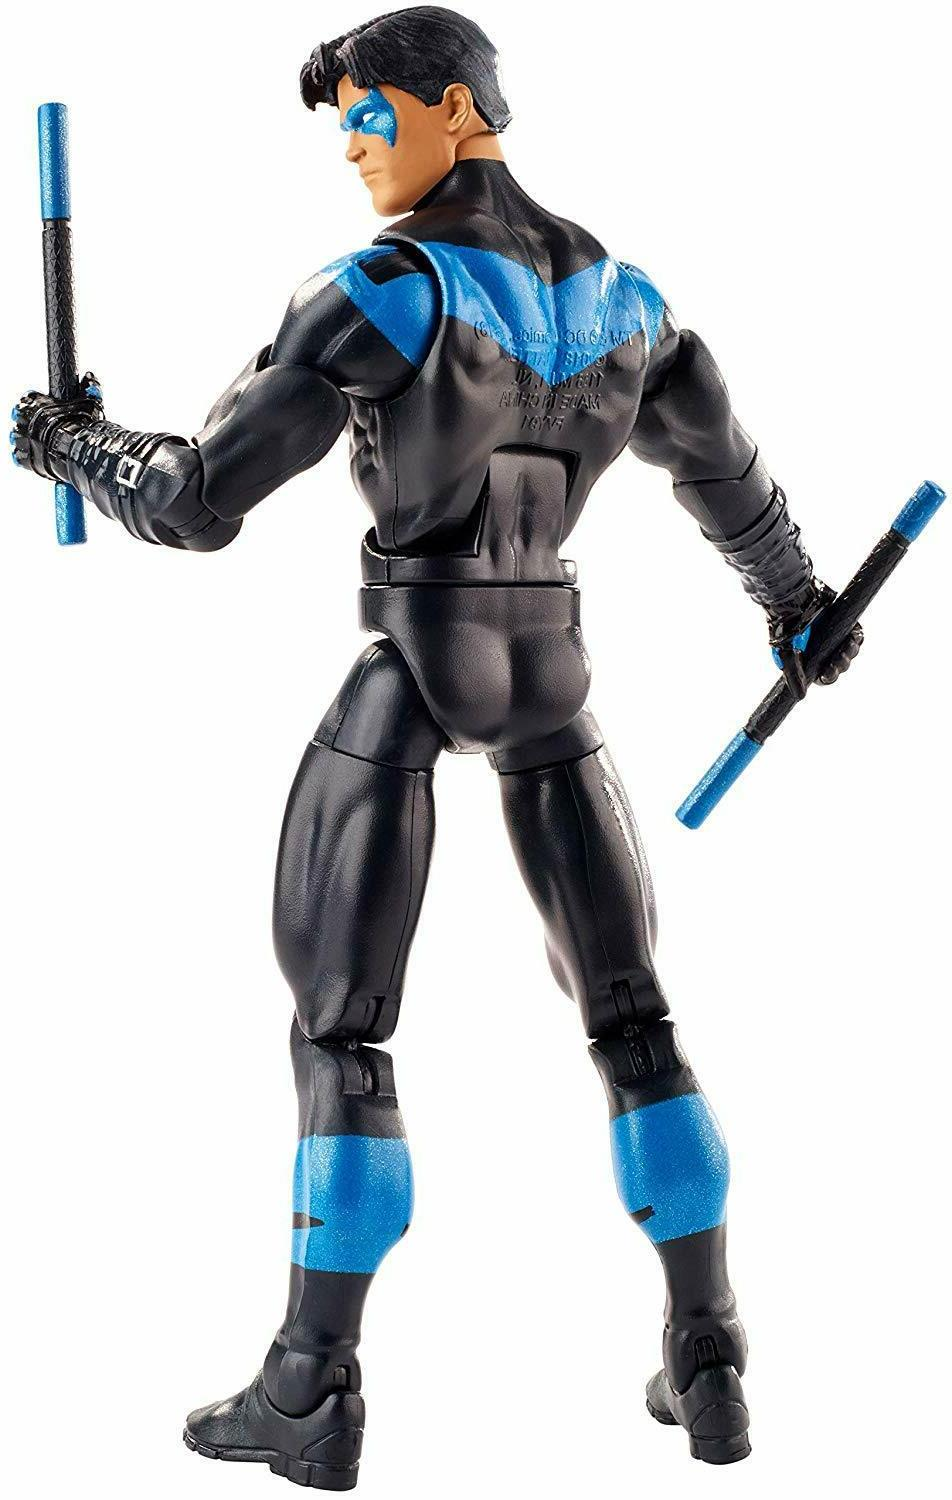 DC Comics Nightwing Action